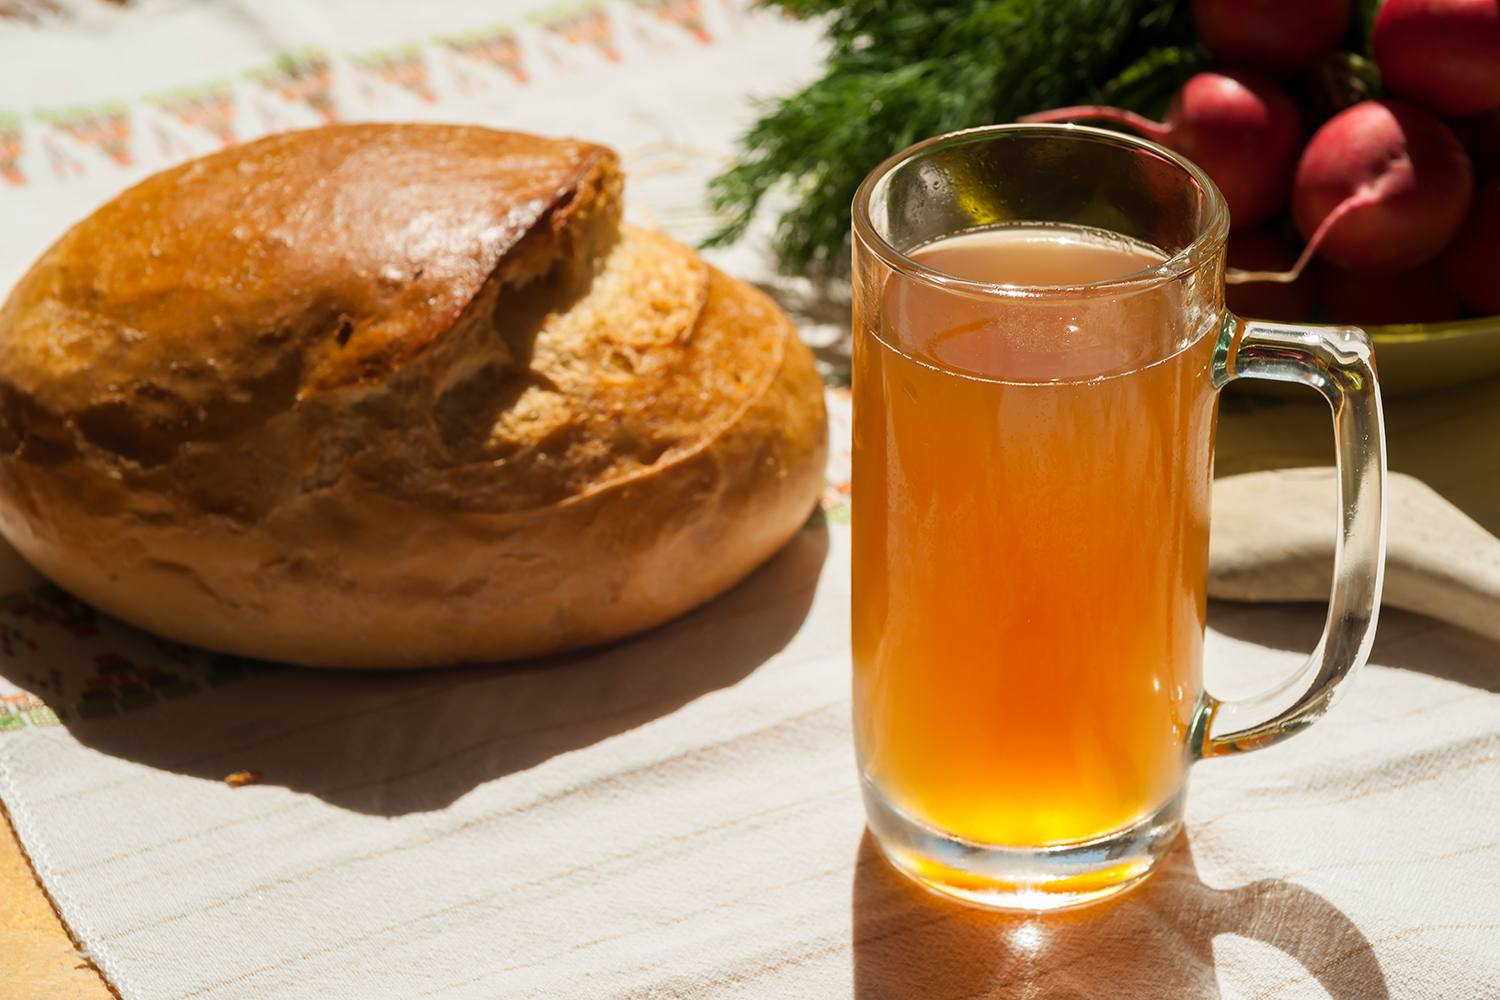 Cold kvass from rye bread